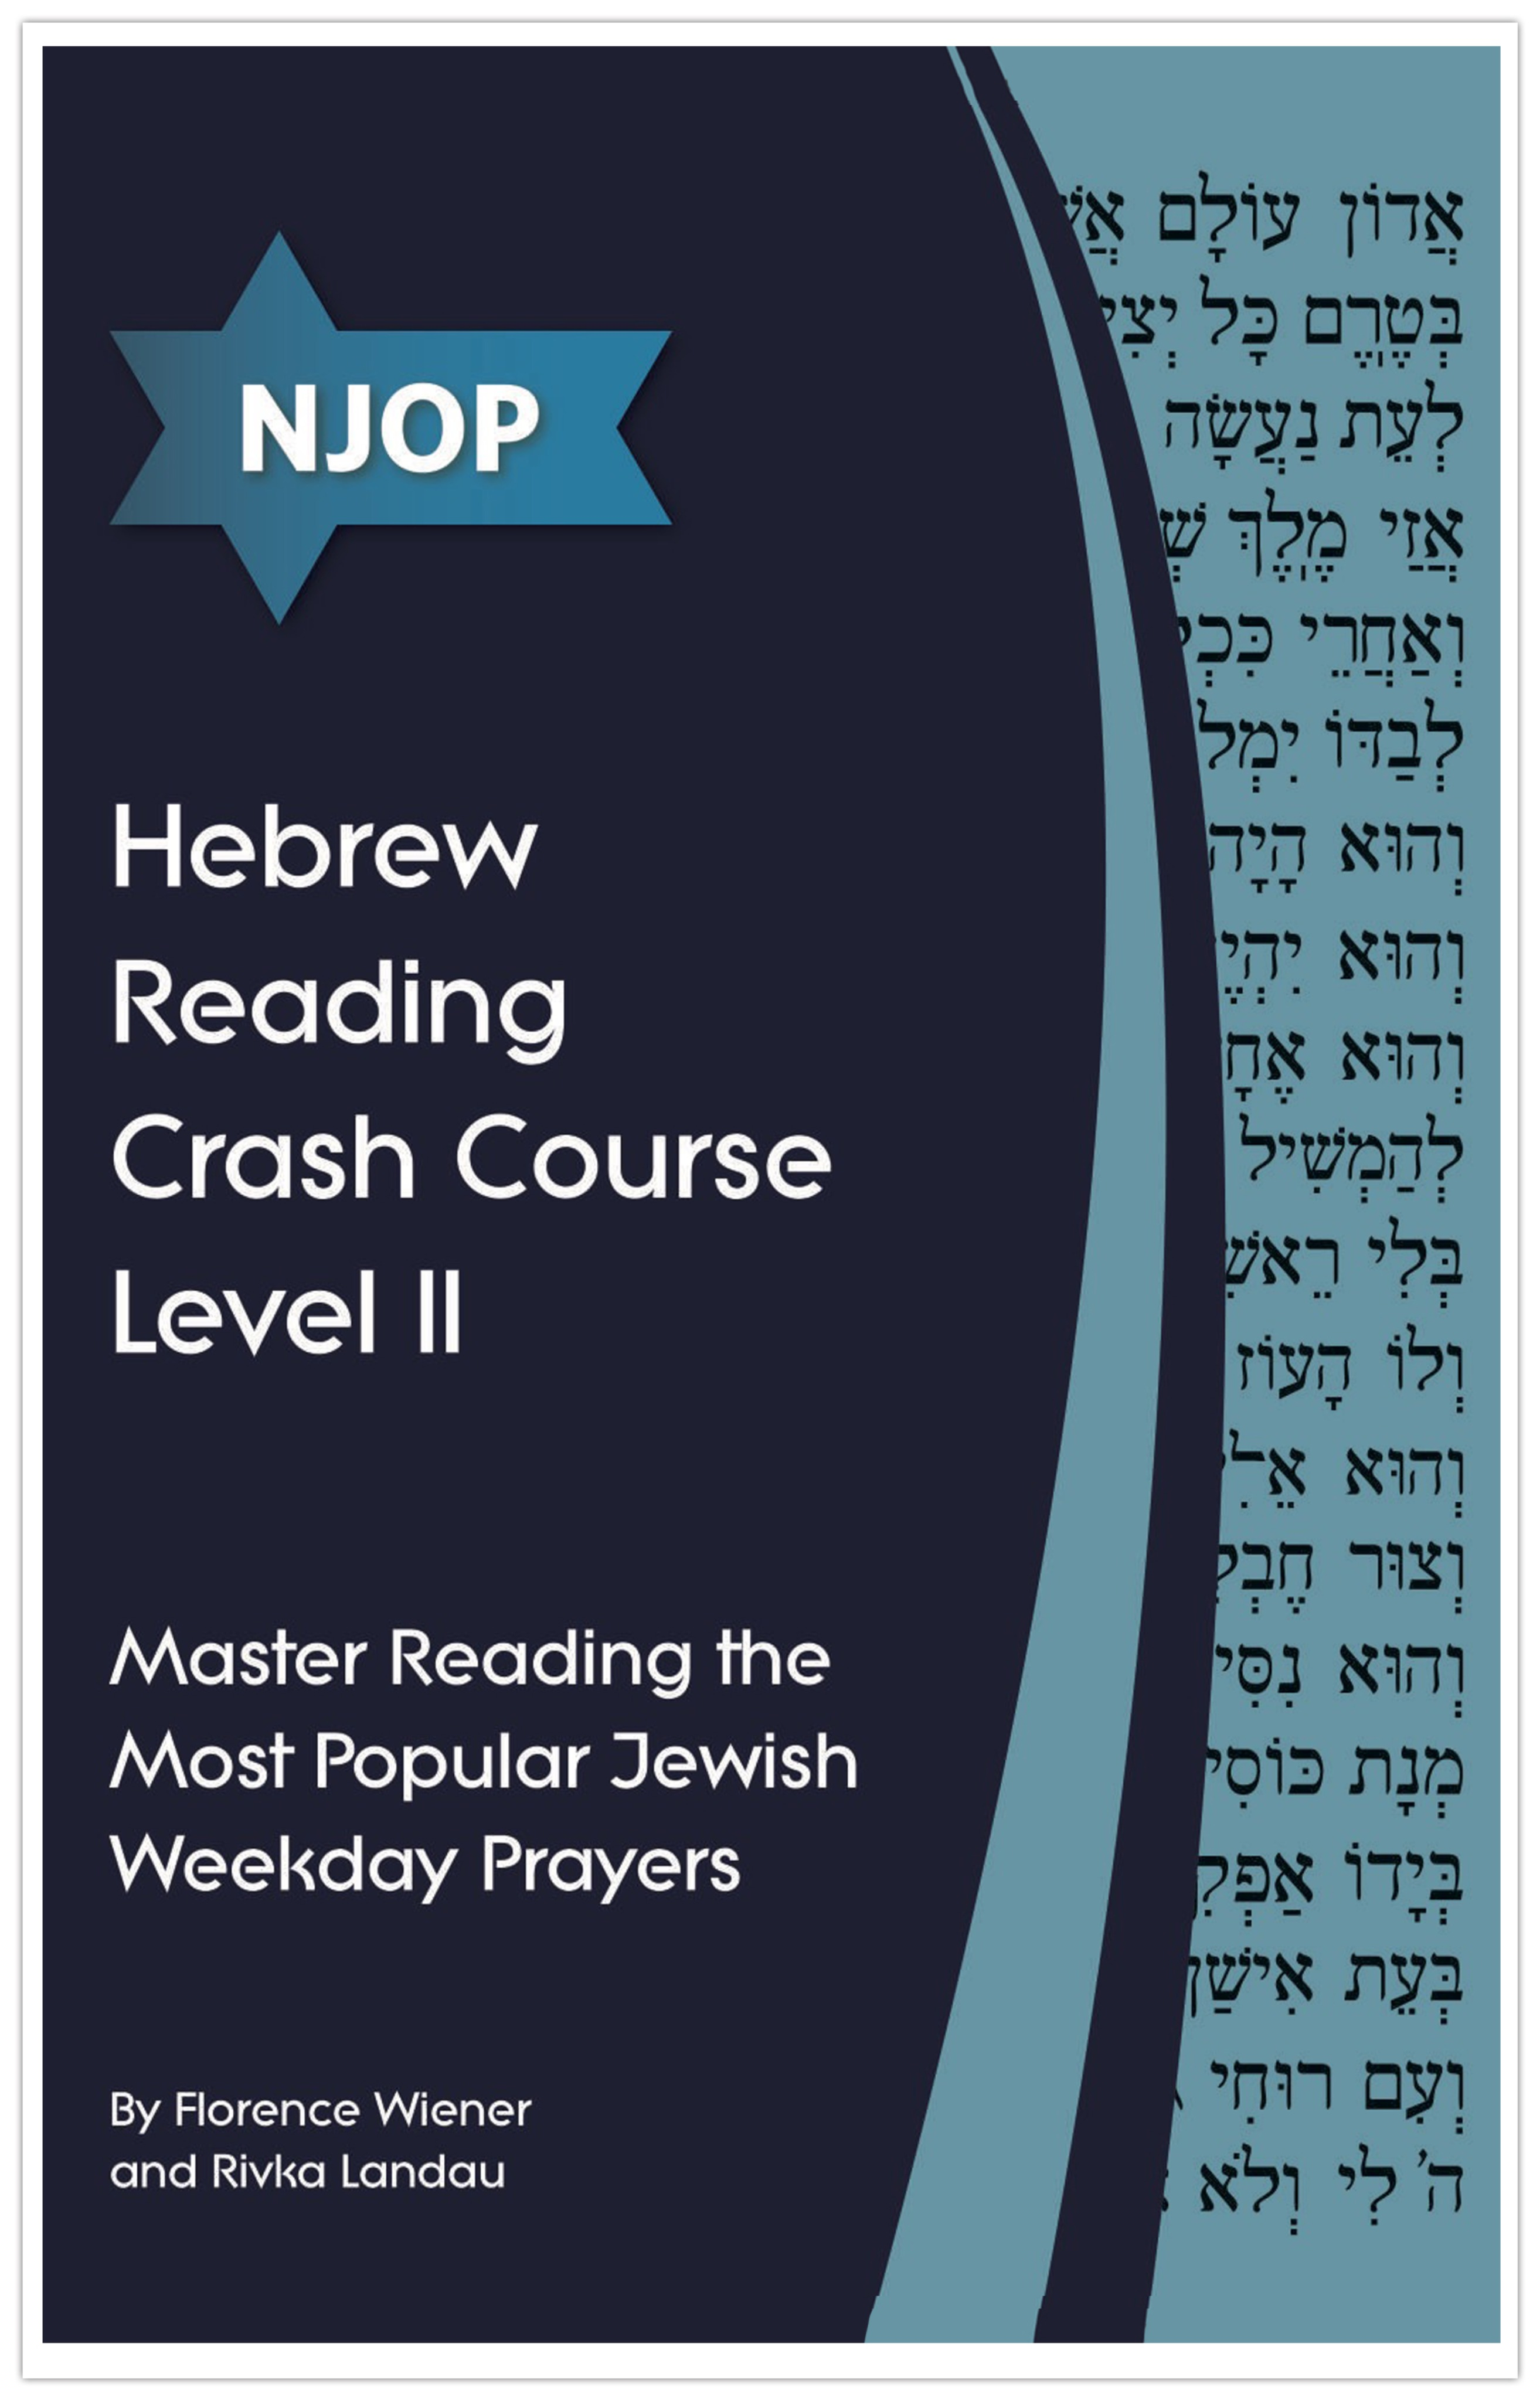 NJOP Hebrew Reading Crash Course Level 2